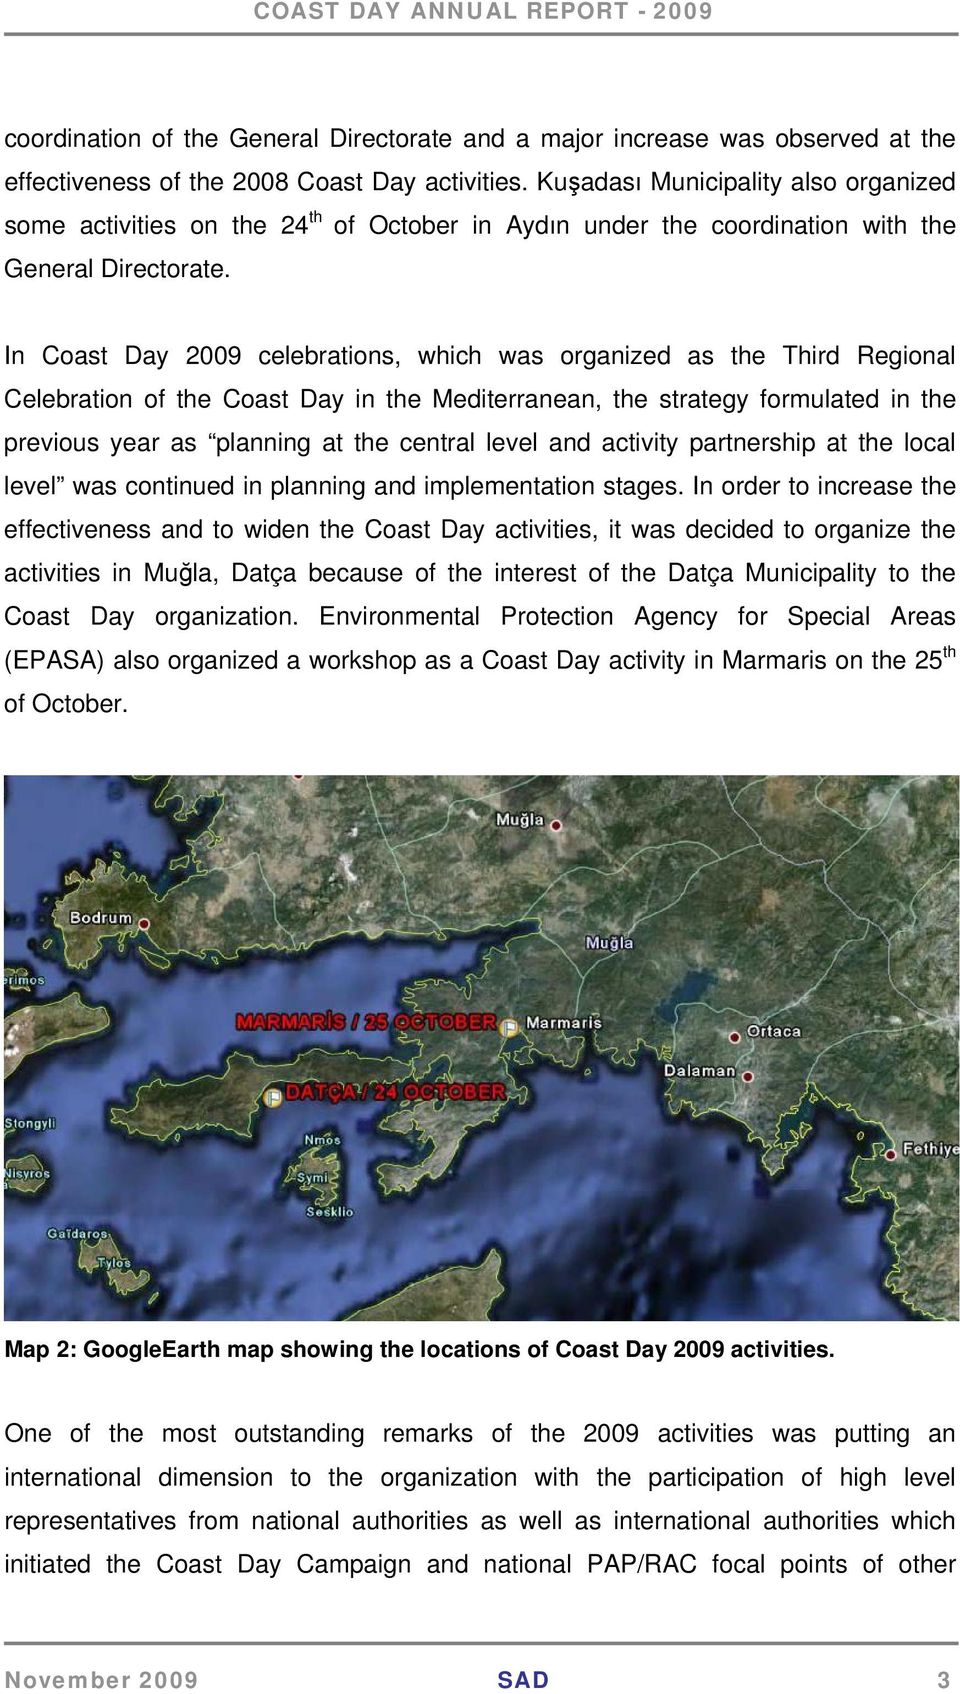 In Coast Day 2009 celebrations, which was organized as the Third Regional Celebration of the Coast Day in the Mediterranean, the strategy formulated in the previous year as planning at the central